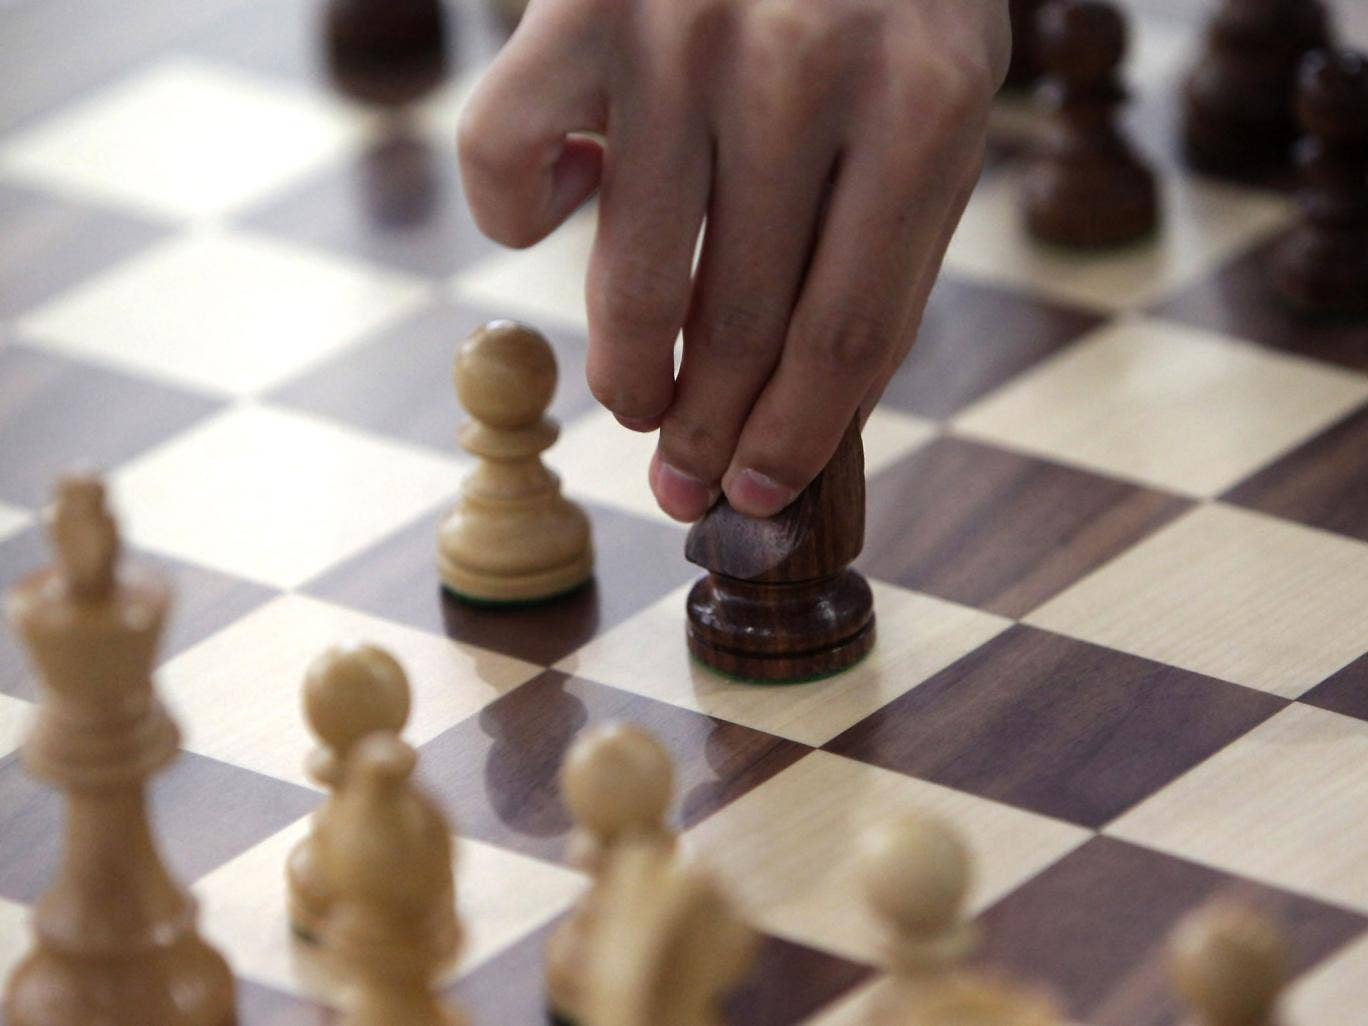 A player competes in the Chess, Men's Classical round 2 during day three of the 4th Asian Indoor & Martial Arts Games at Yonsei International Campus on July 1, 2013 in Incheon, South Korea.